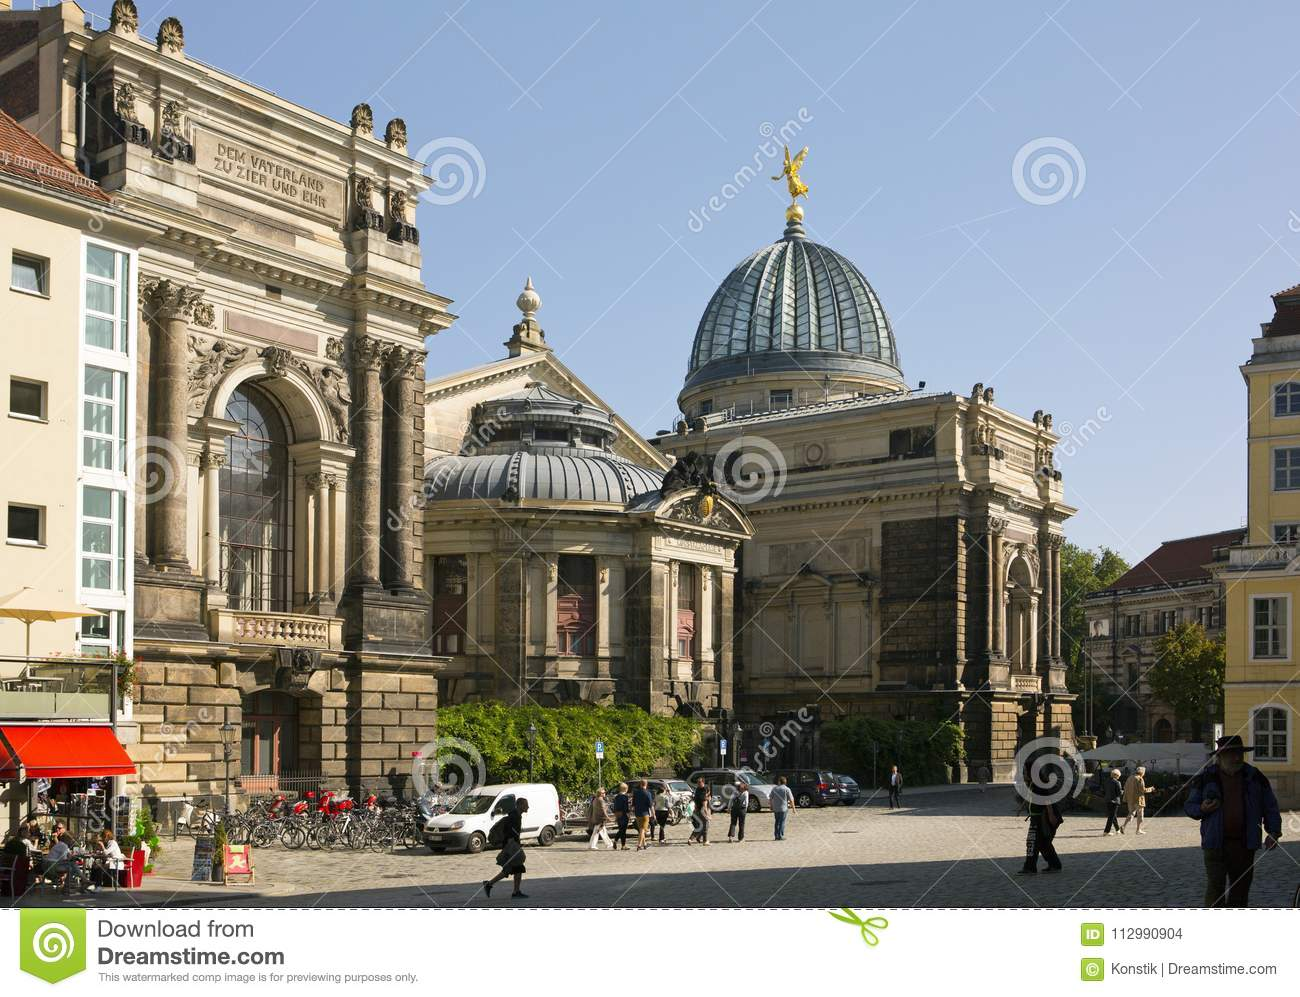 DRESDEN, GERMANY - SEPTEMBER 17: People walk in the center of Old town